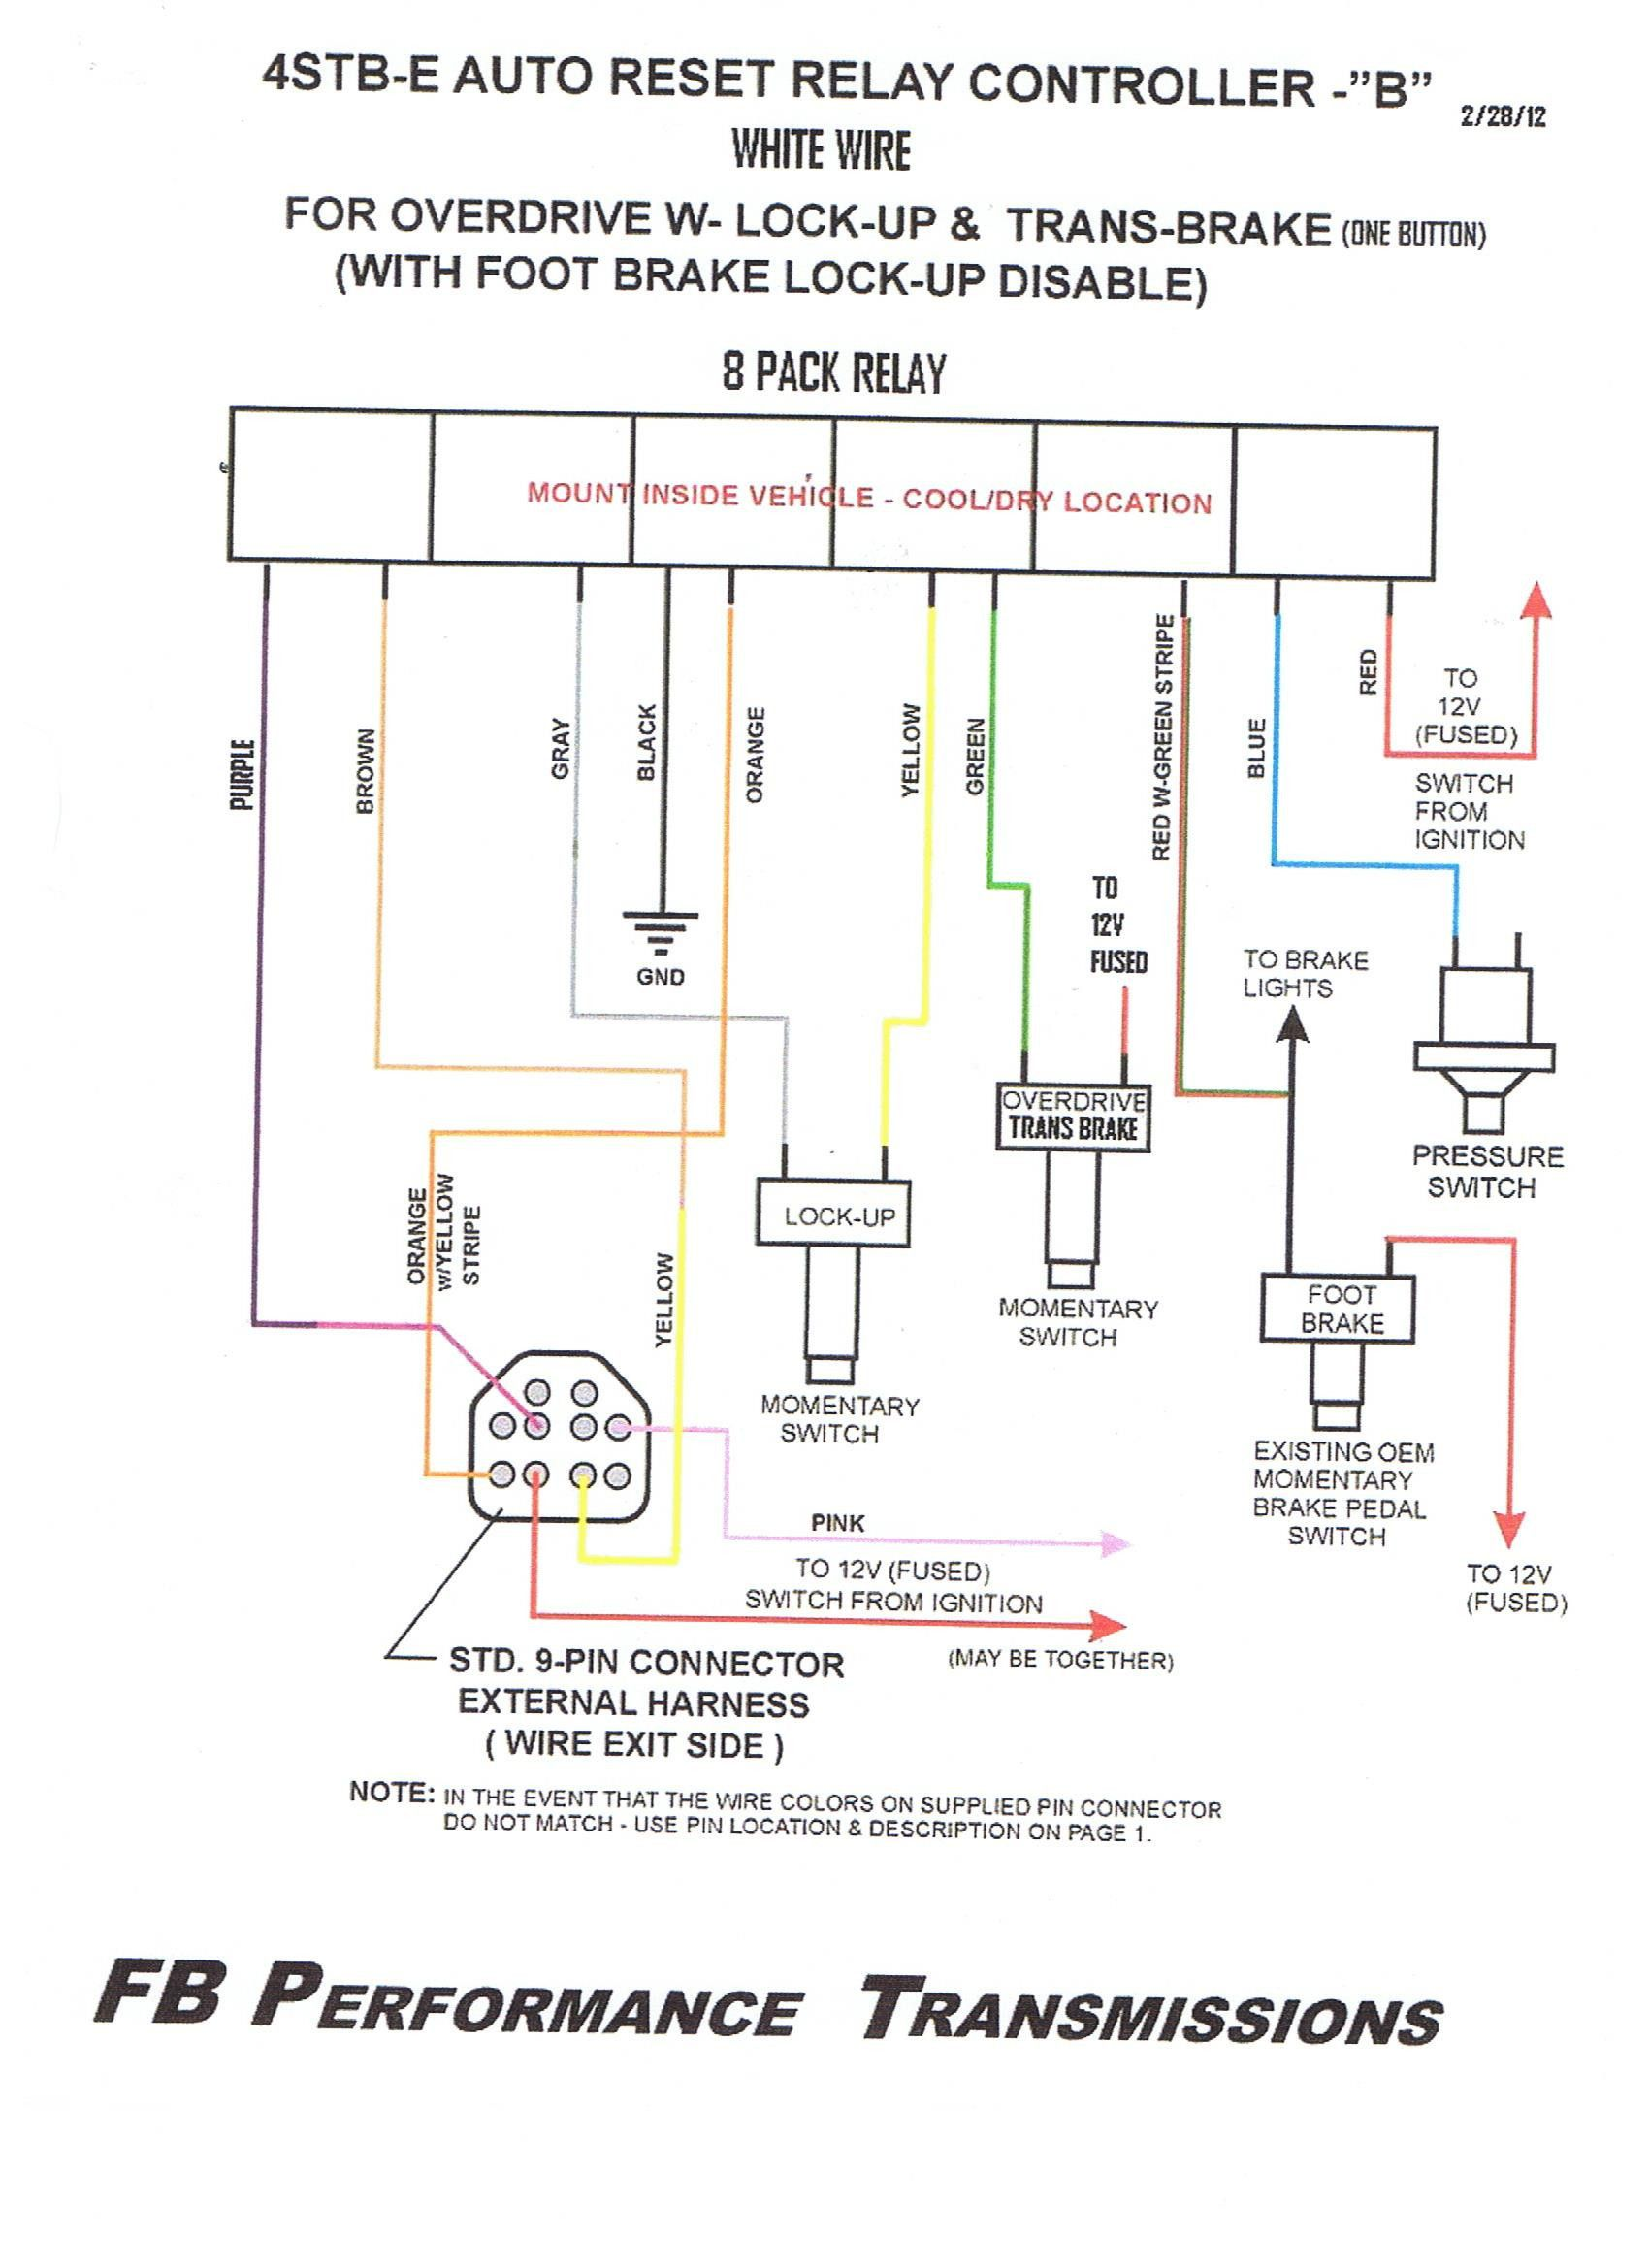 gm fuel sending unit wiring diagram electrical circuit gm relay 1999 S10 Gauge Connection Diagram gm fuel sending unit wiring diagram electrical circuit gm relay wiring trusted wiring diagrams